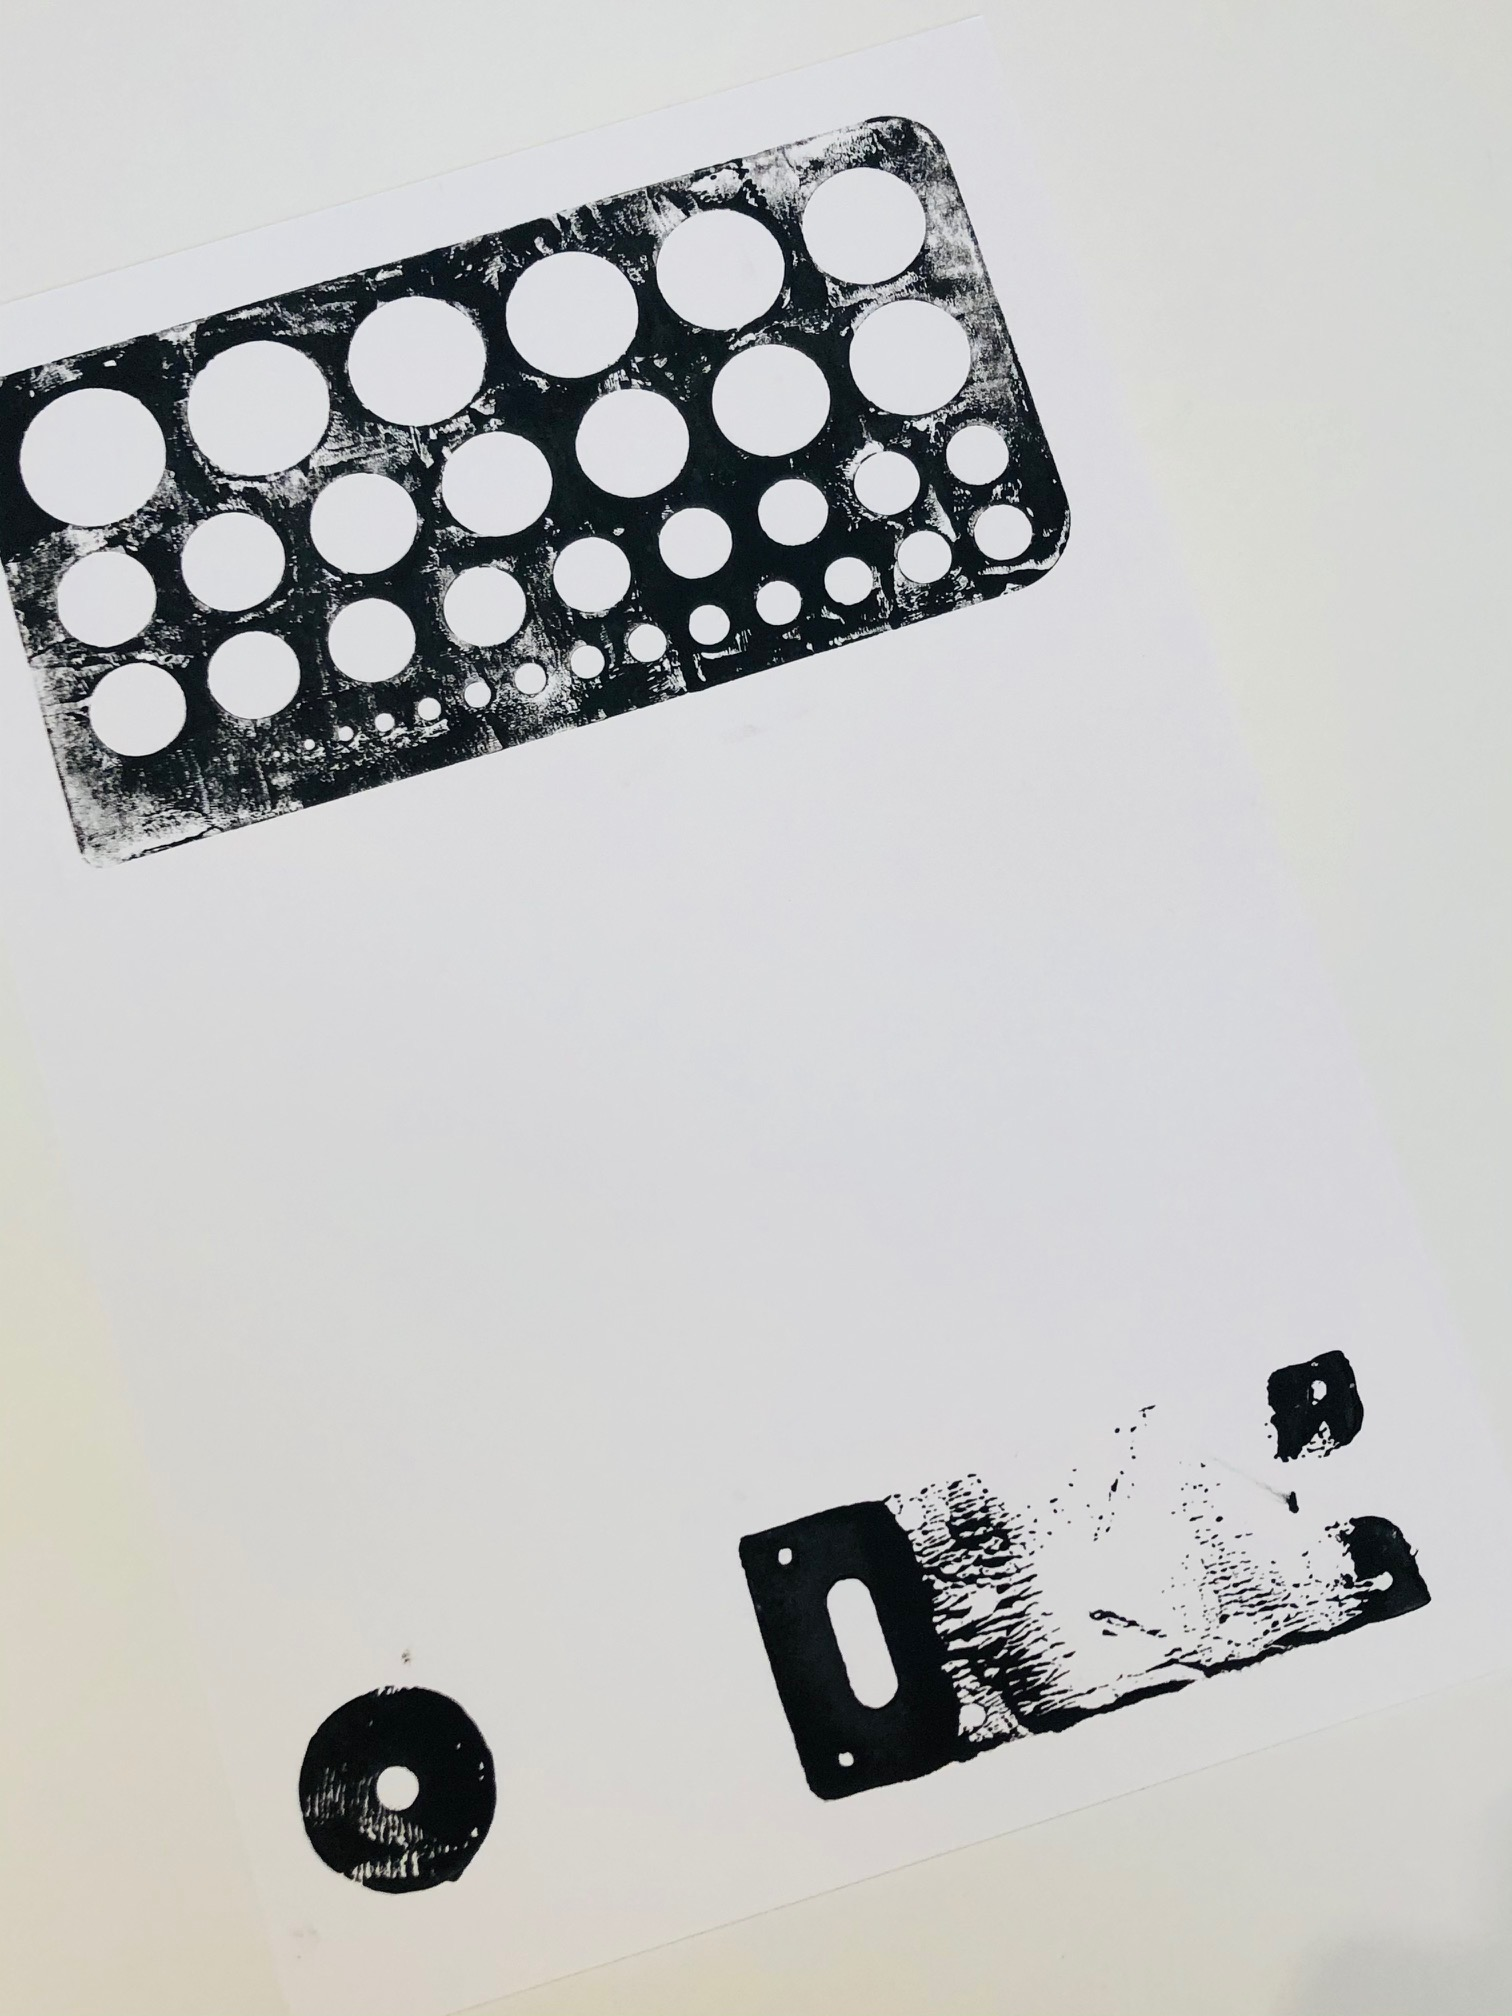 Monoprint 3 by Curtis Rayment